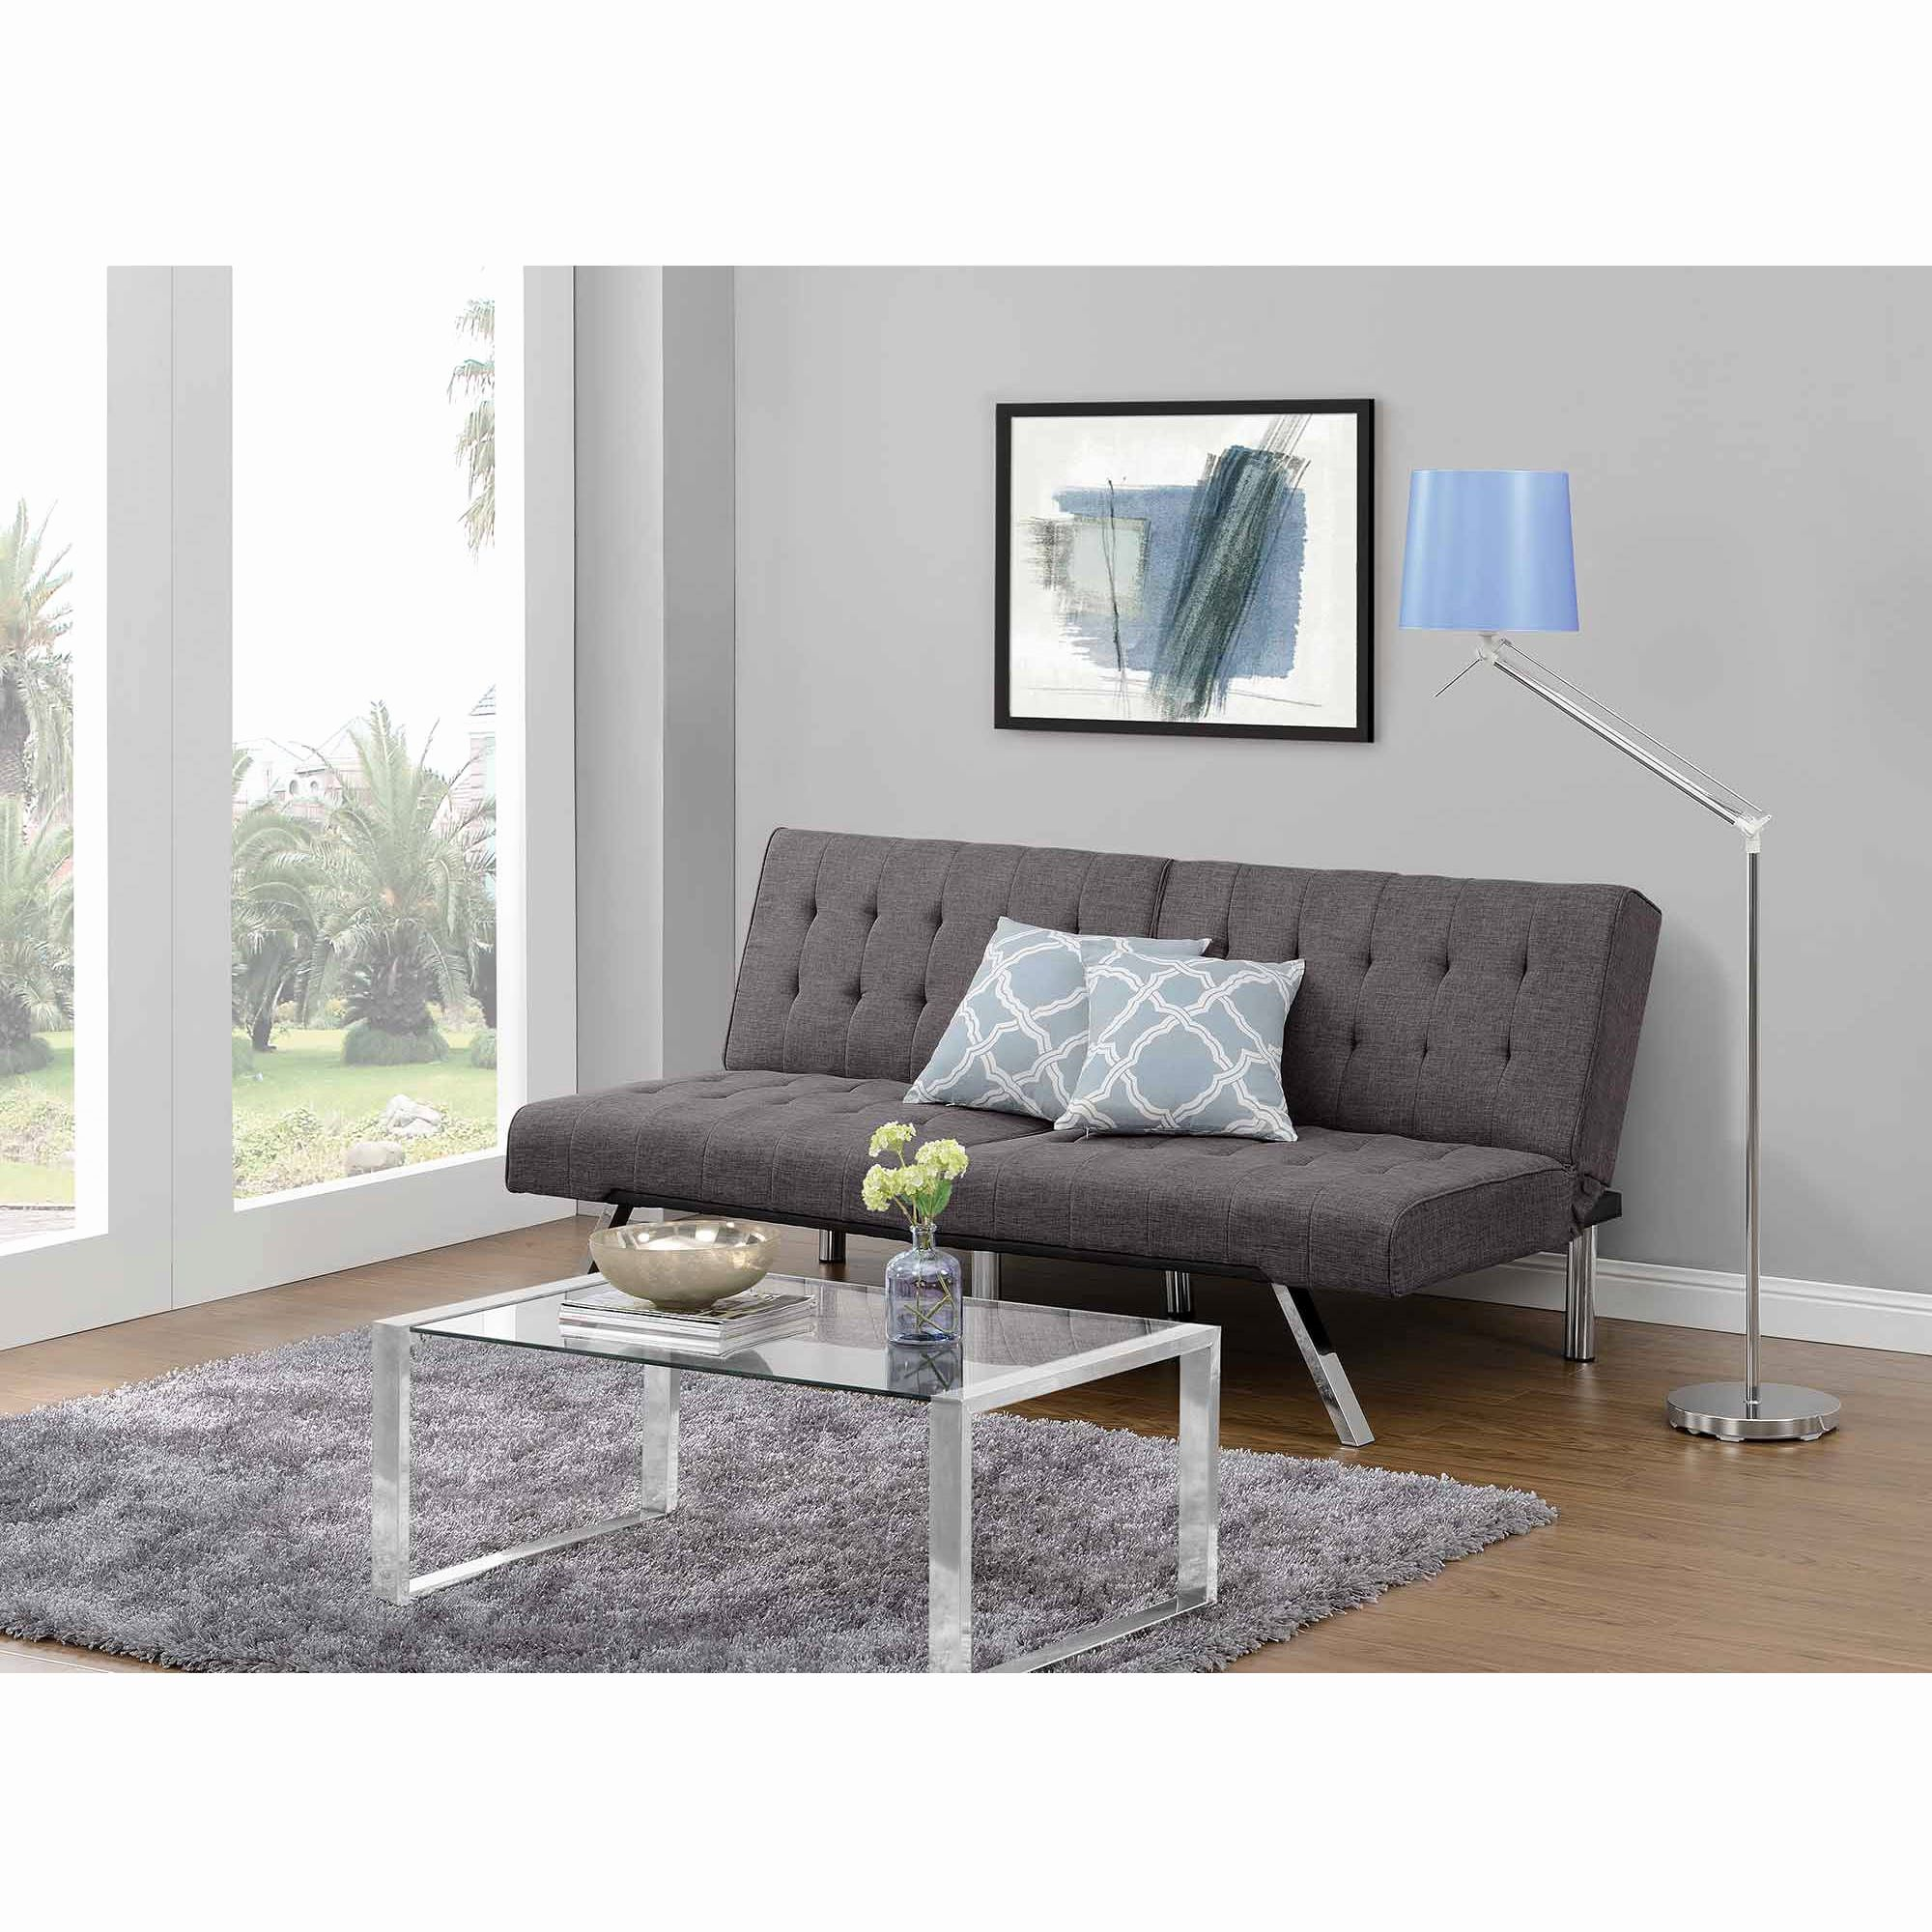 Idea Office Sofa Bed Picture Best Choice Products Modern